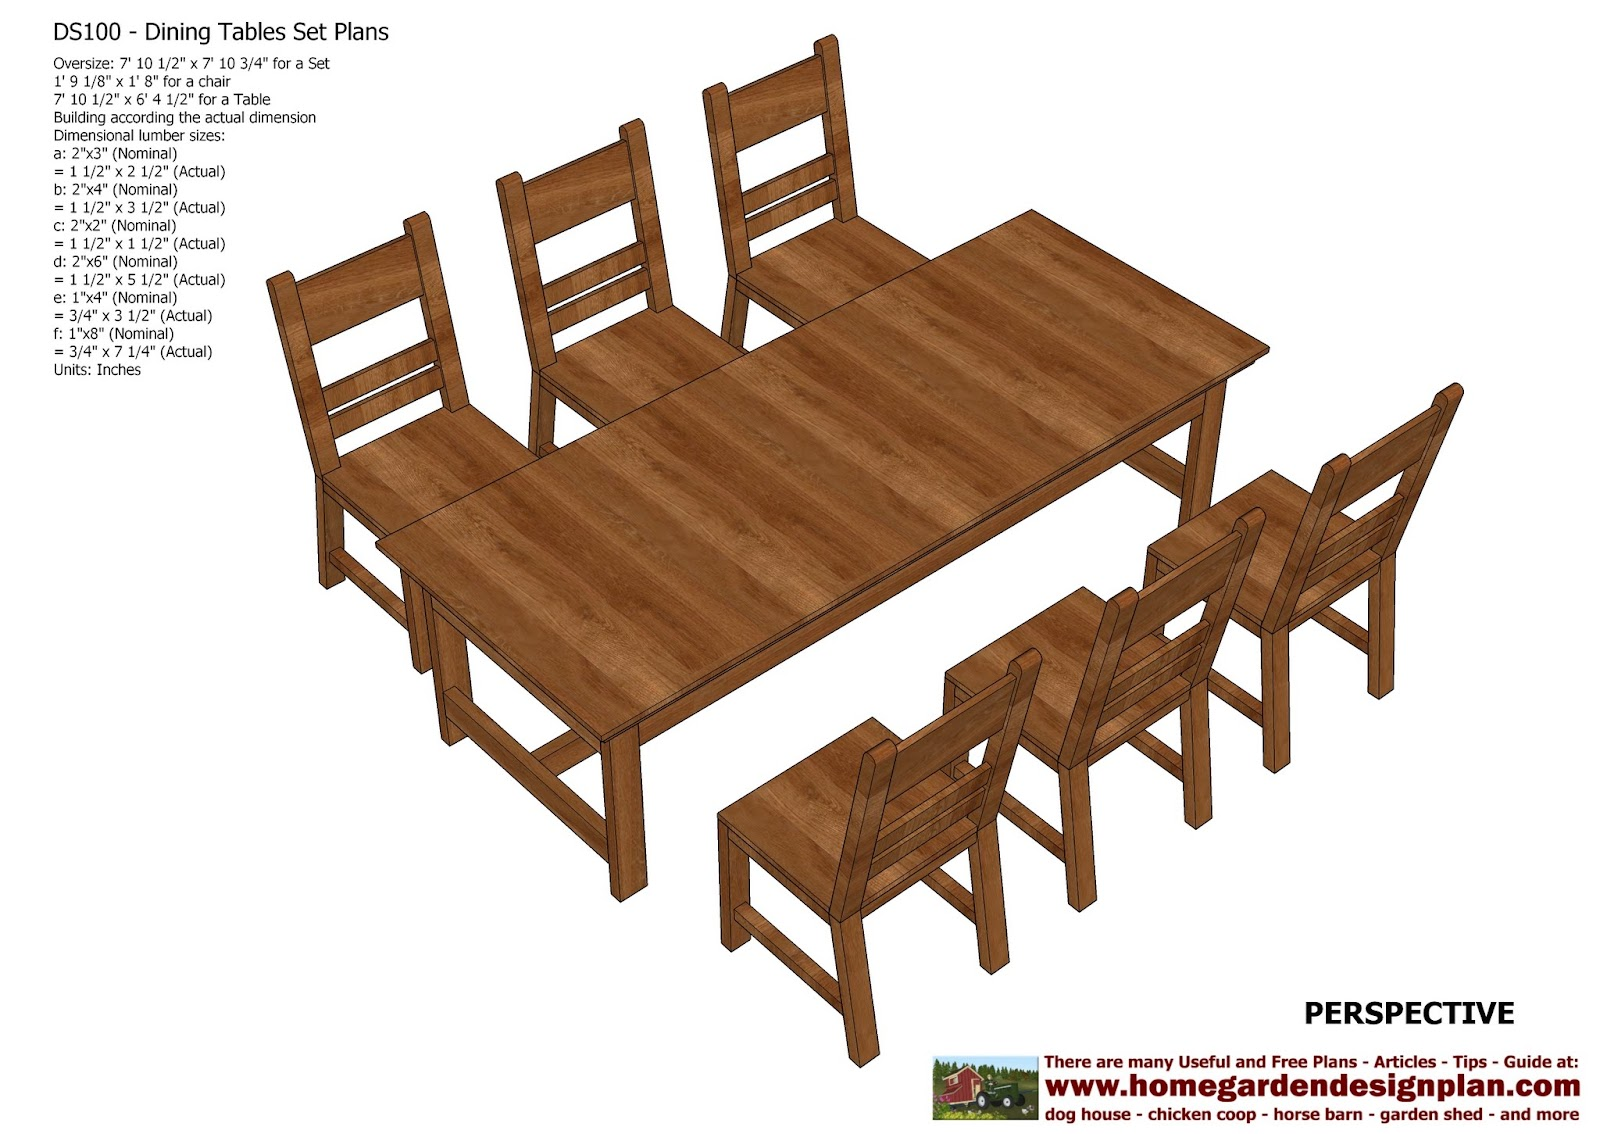 Dining Set Table Plans Outdoor Furniture Plans Woodworking Plans